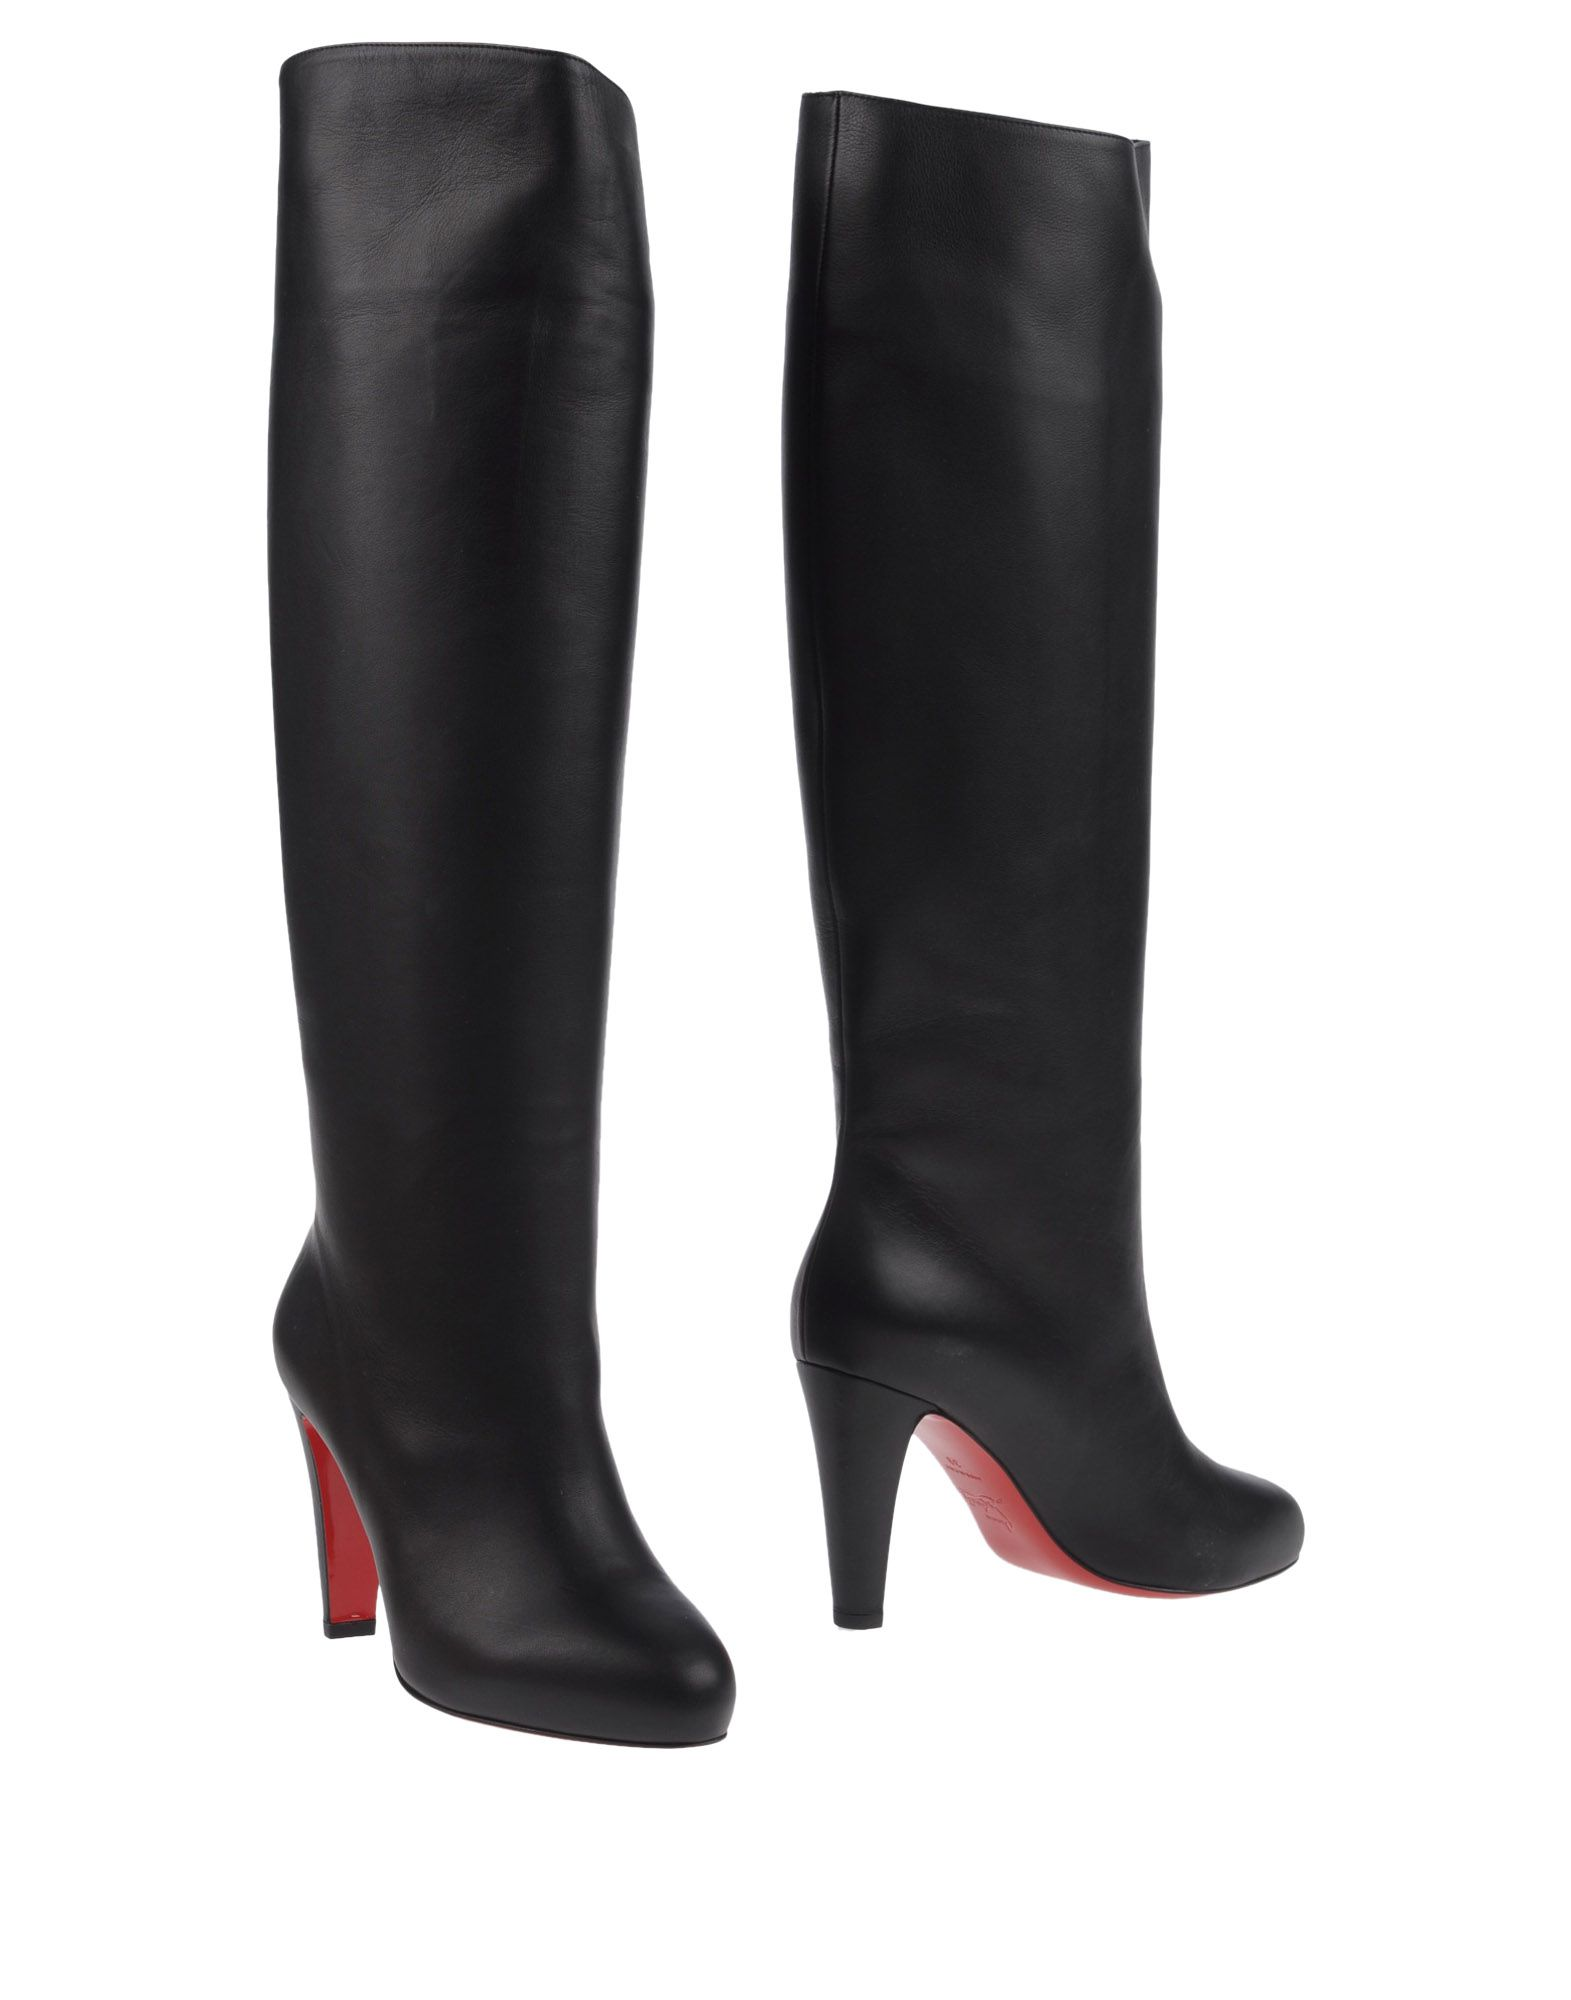 Marmara Botta 85 Black Calf Boots